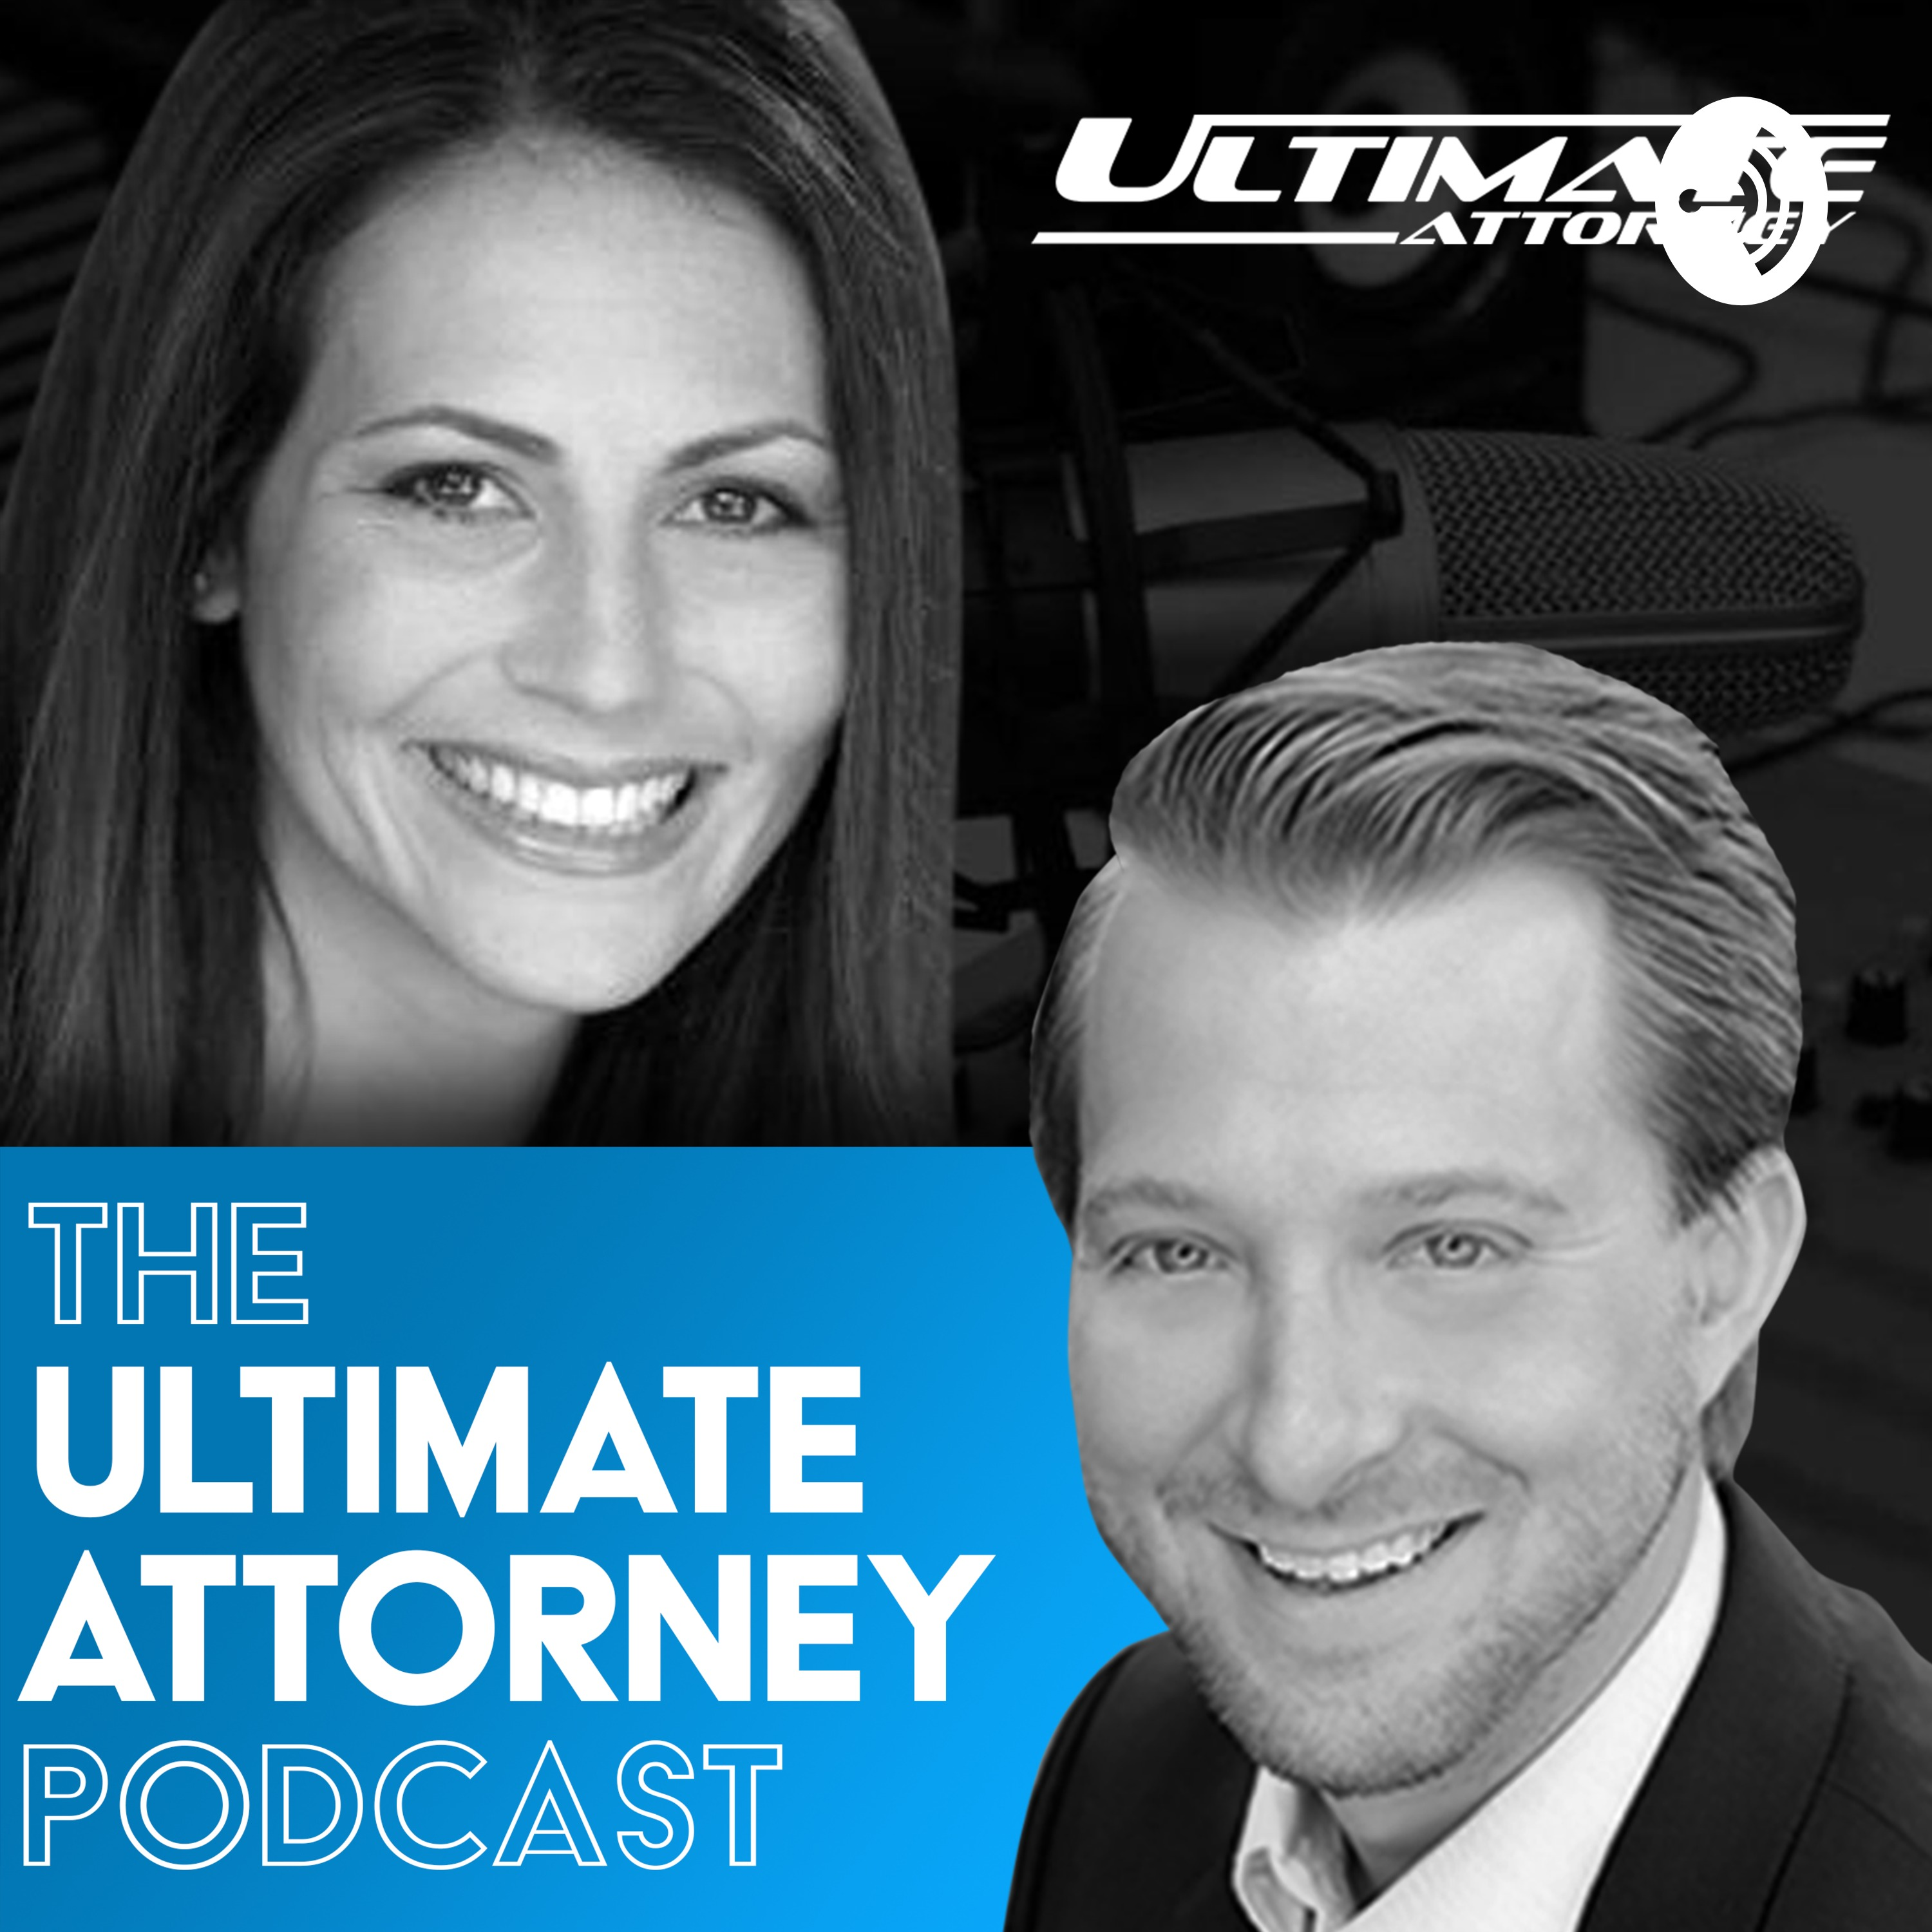 Episode 41 - How to Reduce or Eliminate The Stress of Running A Law Firm